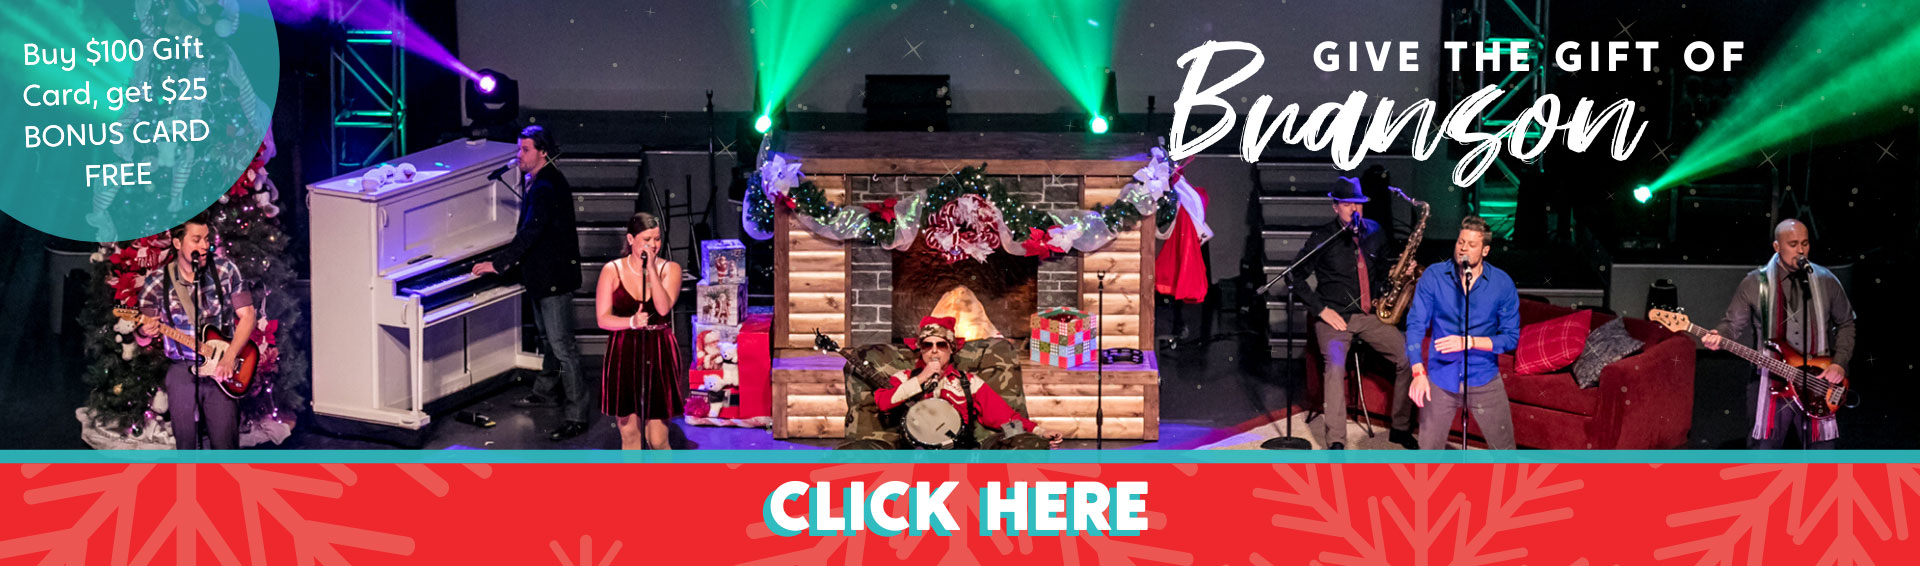 Branson Gift Cards Make A Great Gift!